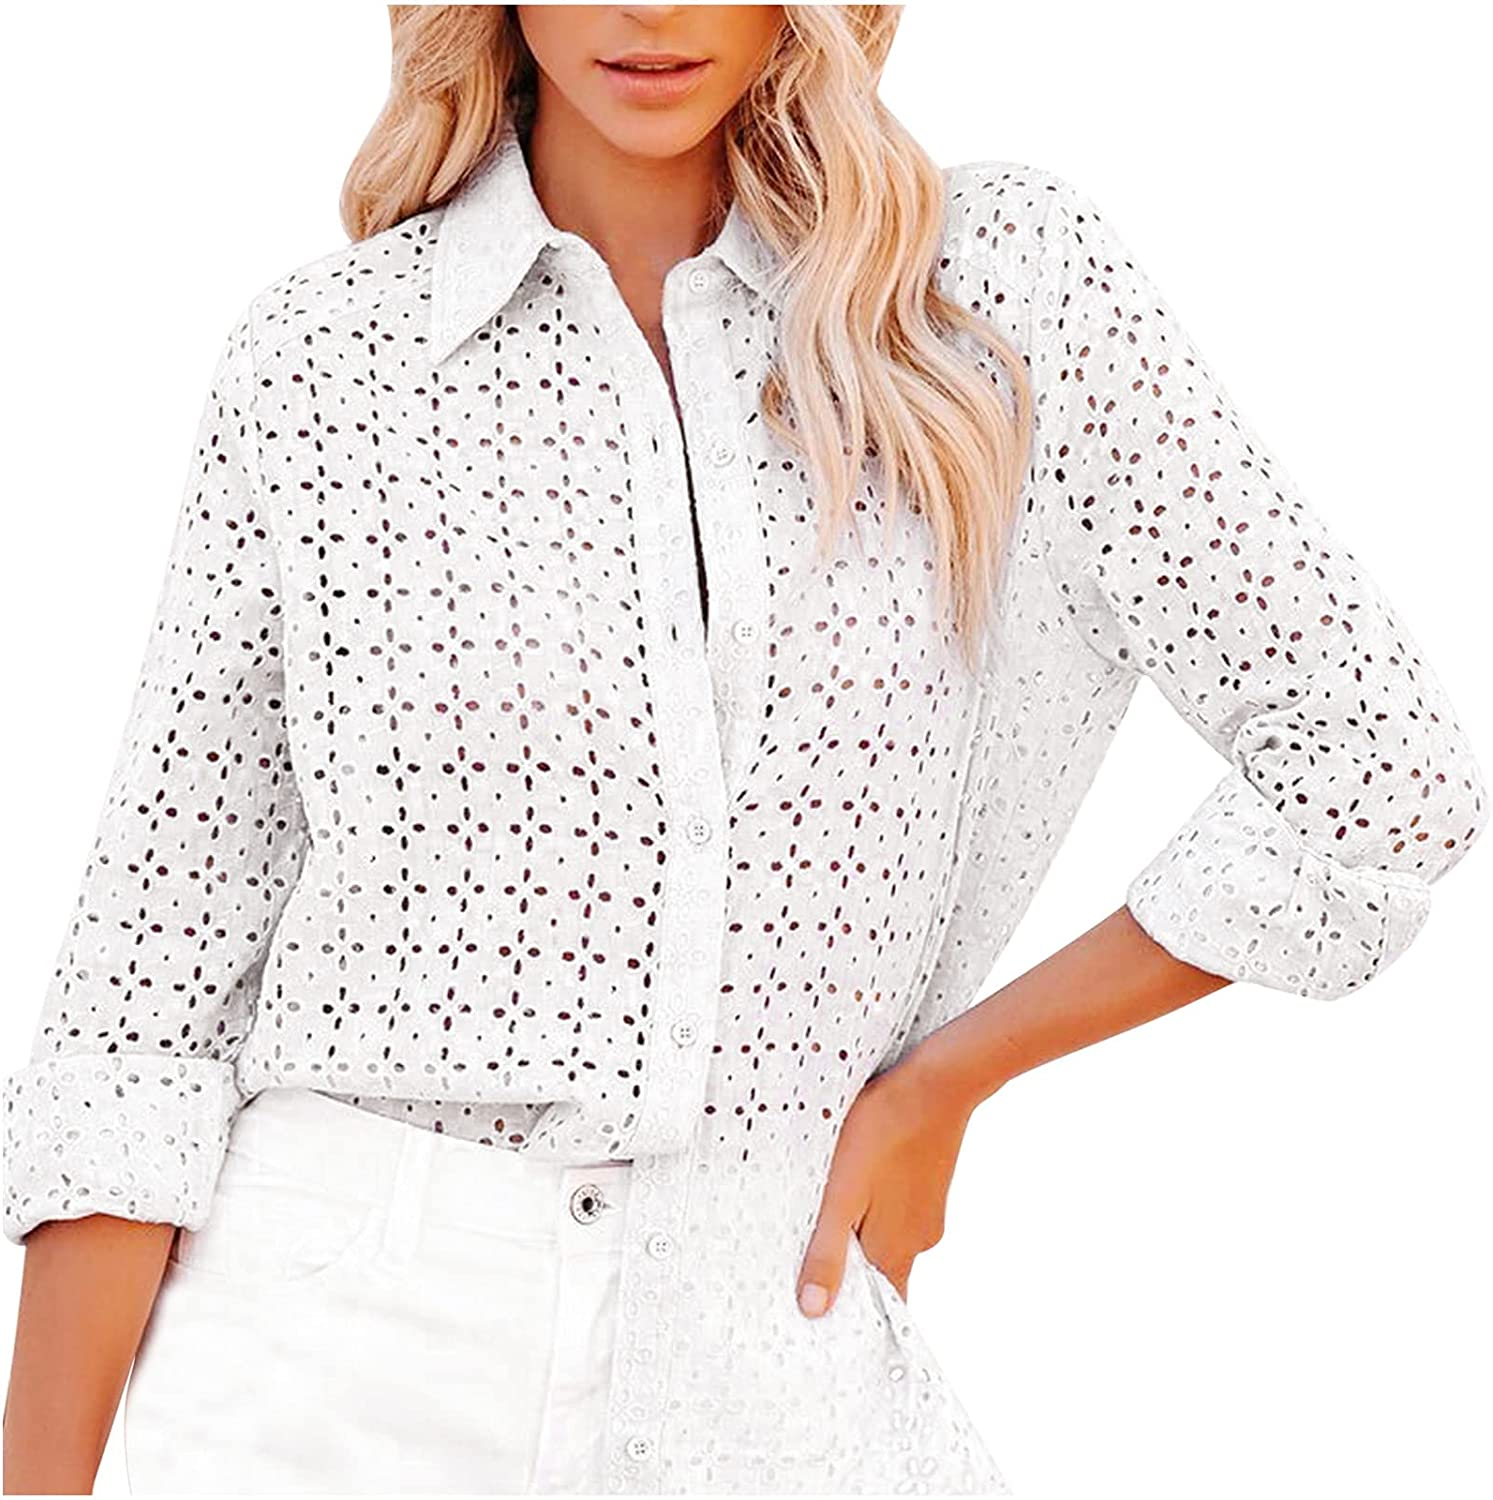 Eyelet Tops for Womens Sexy See Through Blouse Lapel Crochet Tshirts Casual Long Sleeve T Shirts Button Up Tees